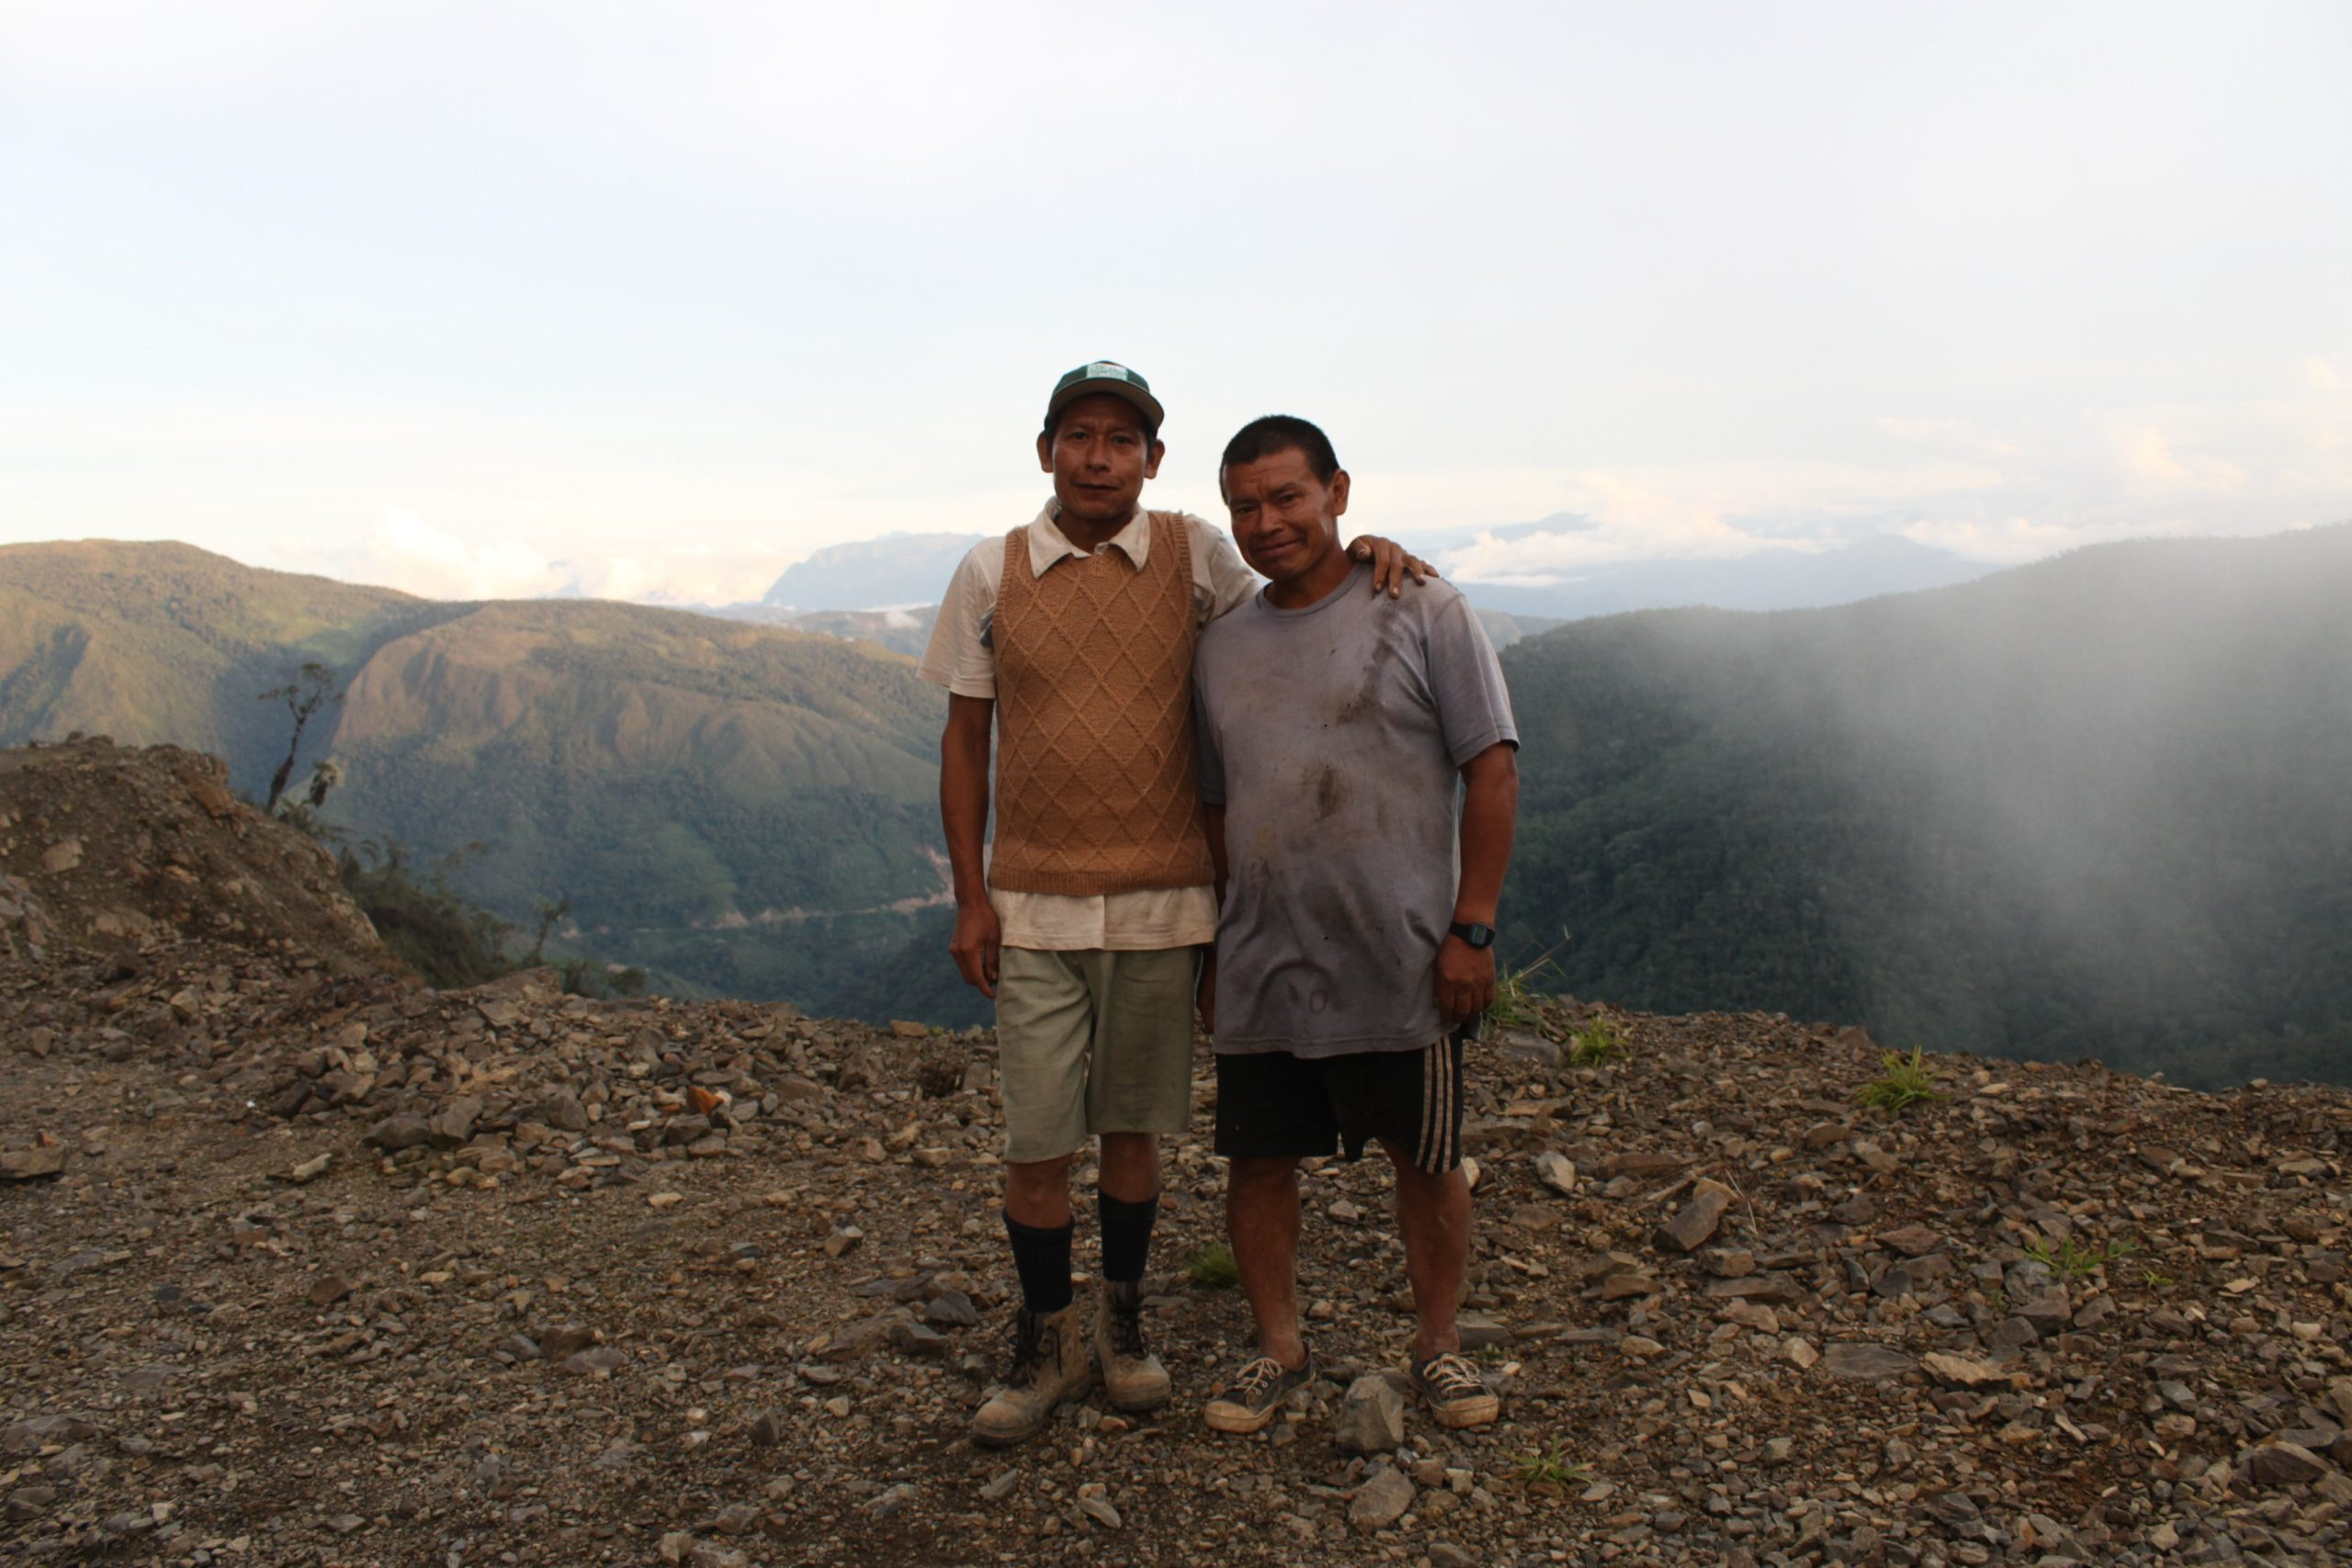 Photograph of two people outdoors